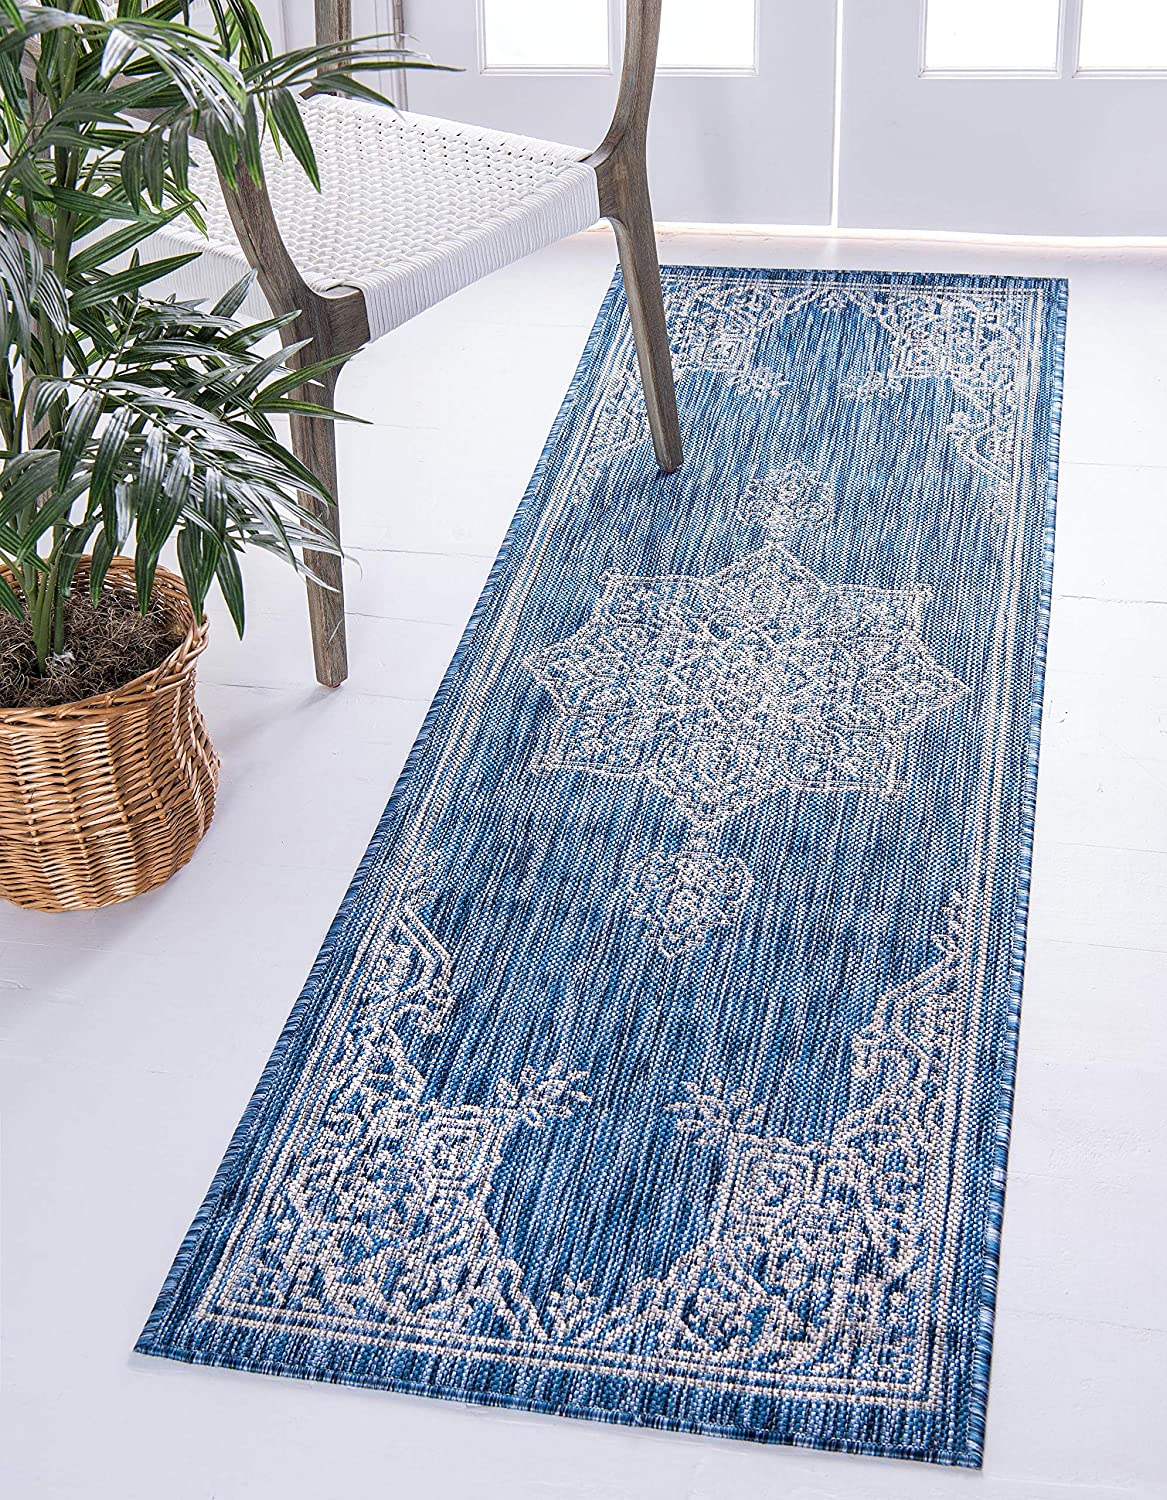 Unique Loom Outdoor Traditional Collection Classic Medallion Transitional Indoor and Outdoor Flatweave bluee  Runner Rug (2' x 6')